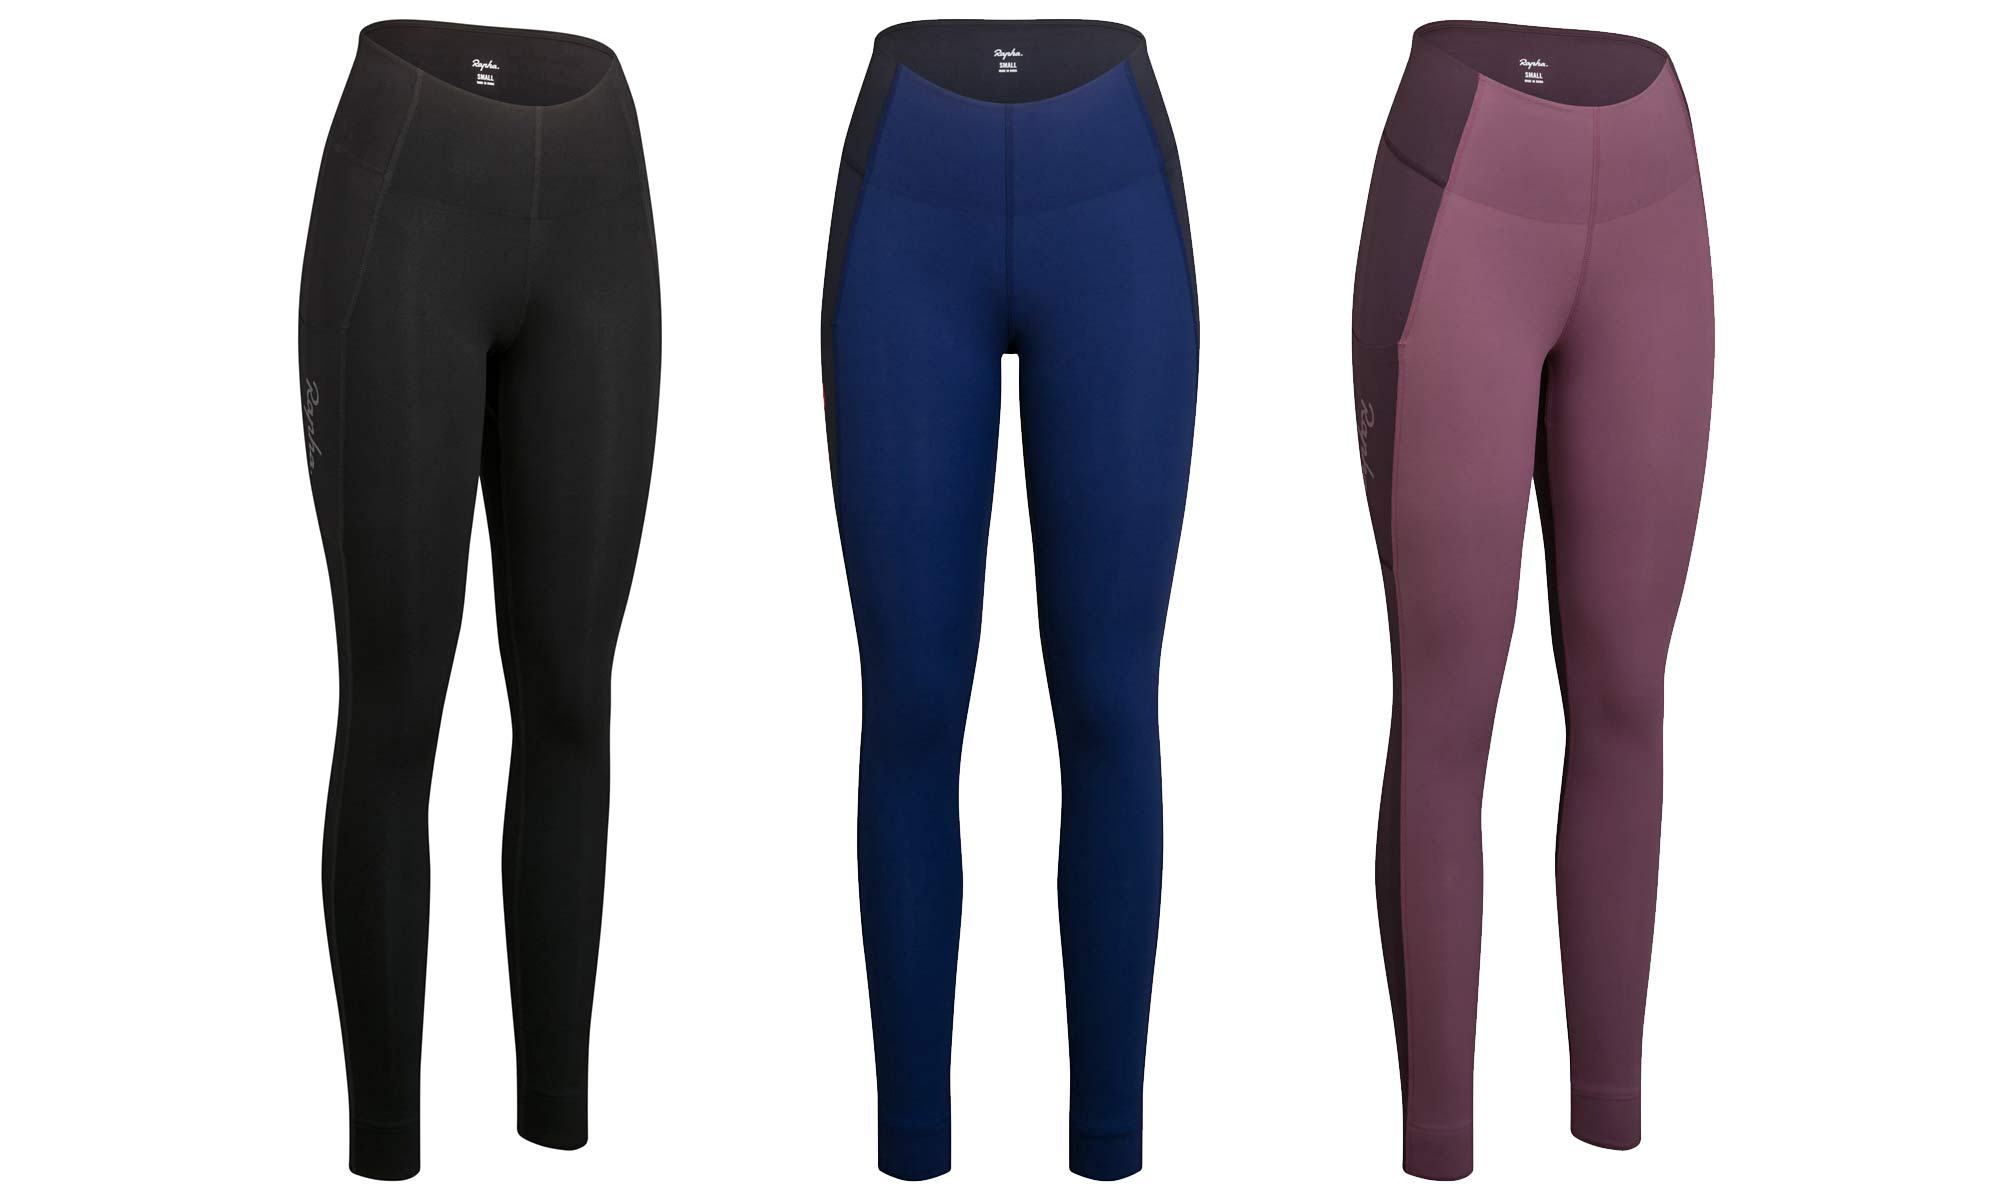 Rapha Women's All Day Leggings and Shorts,tights